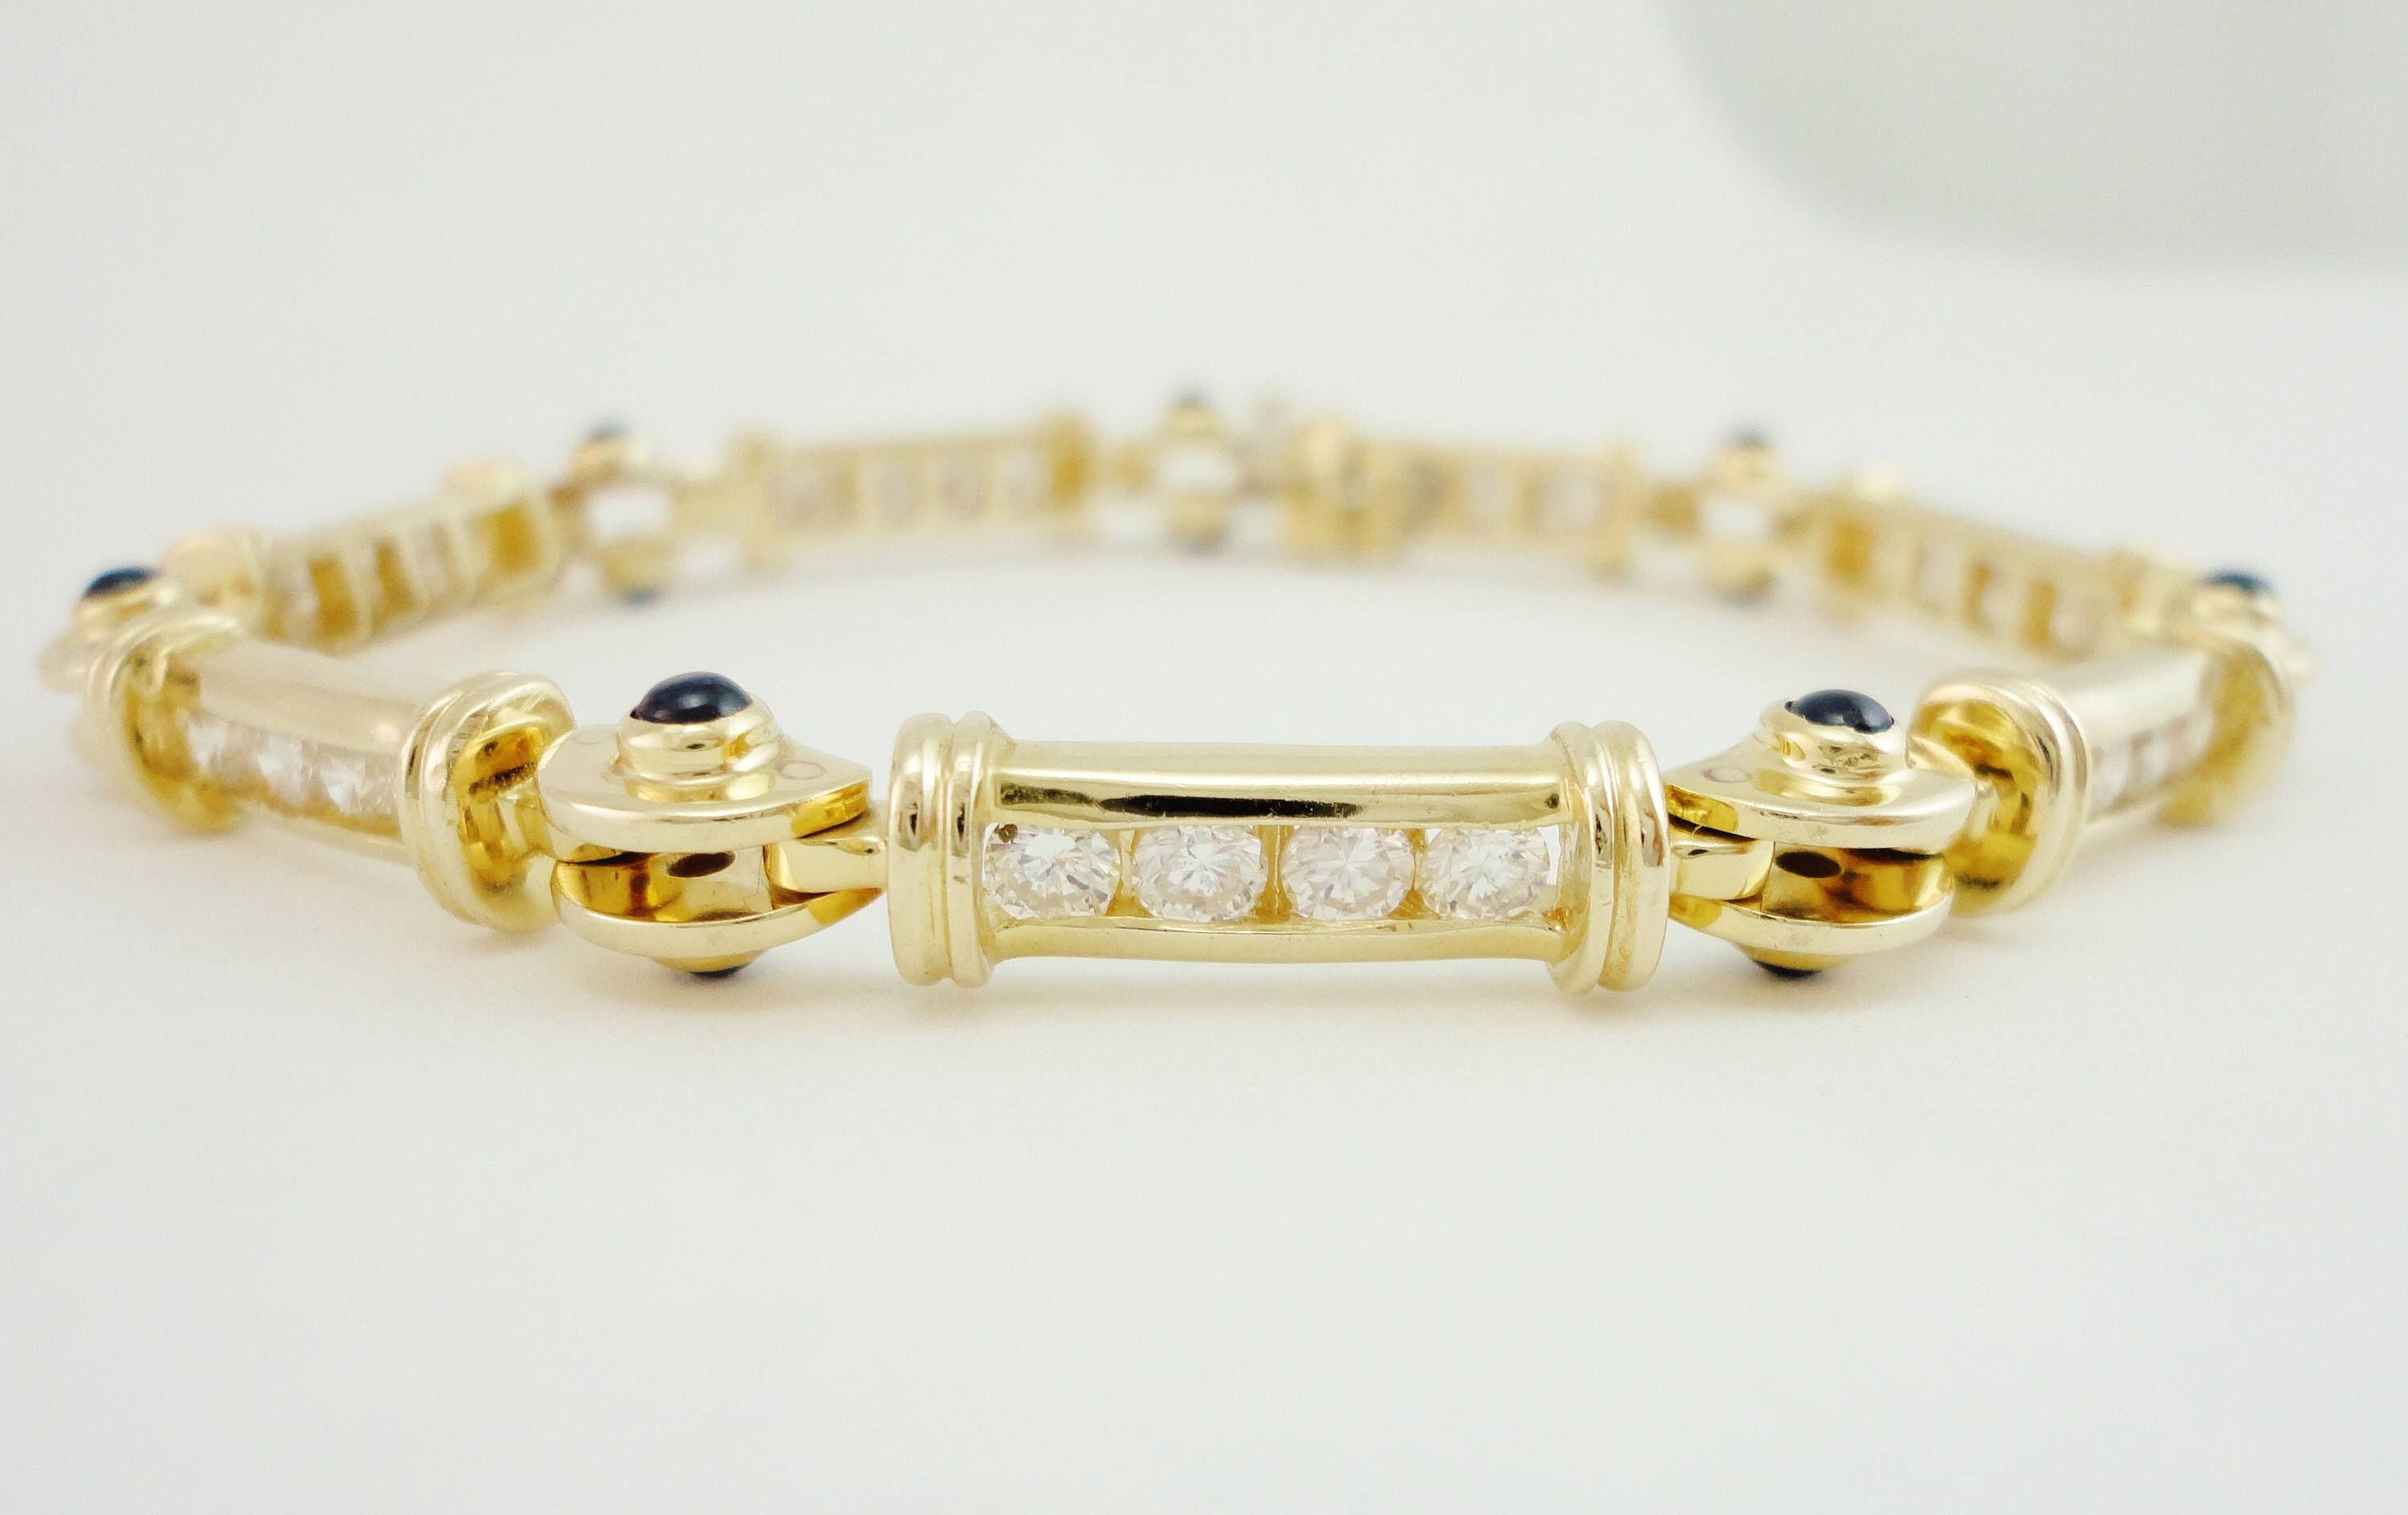 in bracelet gold jewelry jewellery diamondland diamond rose